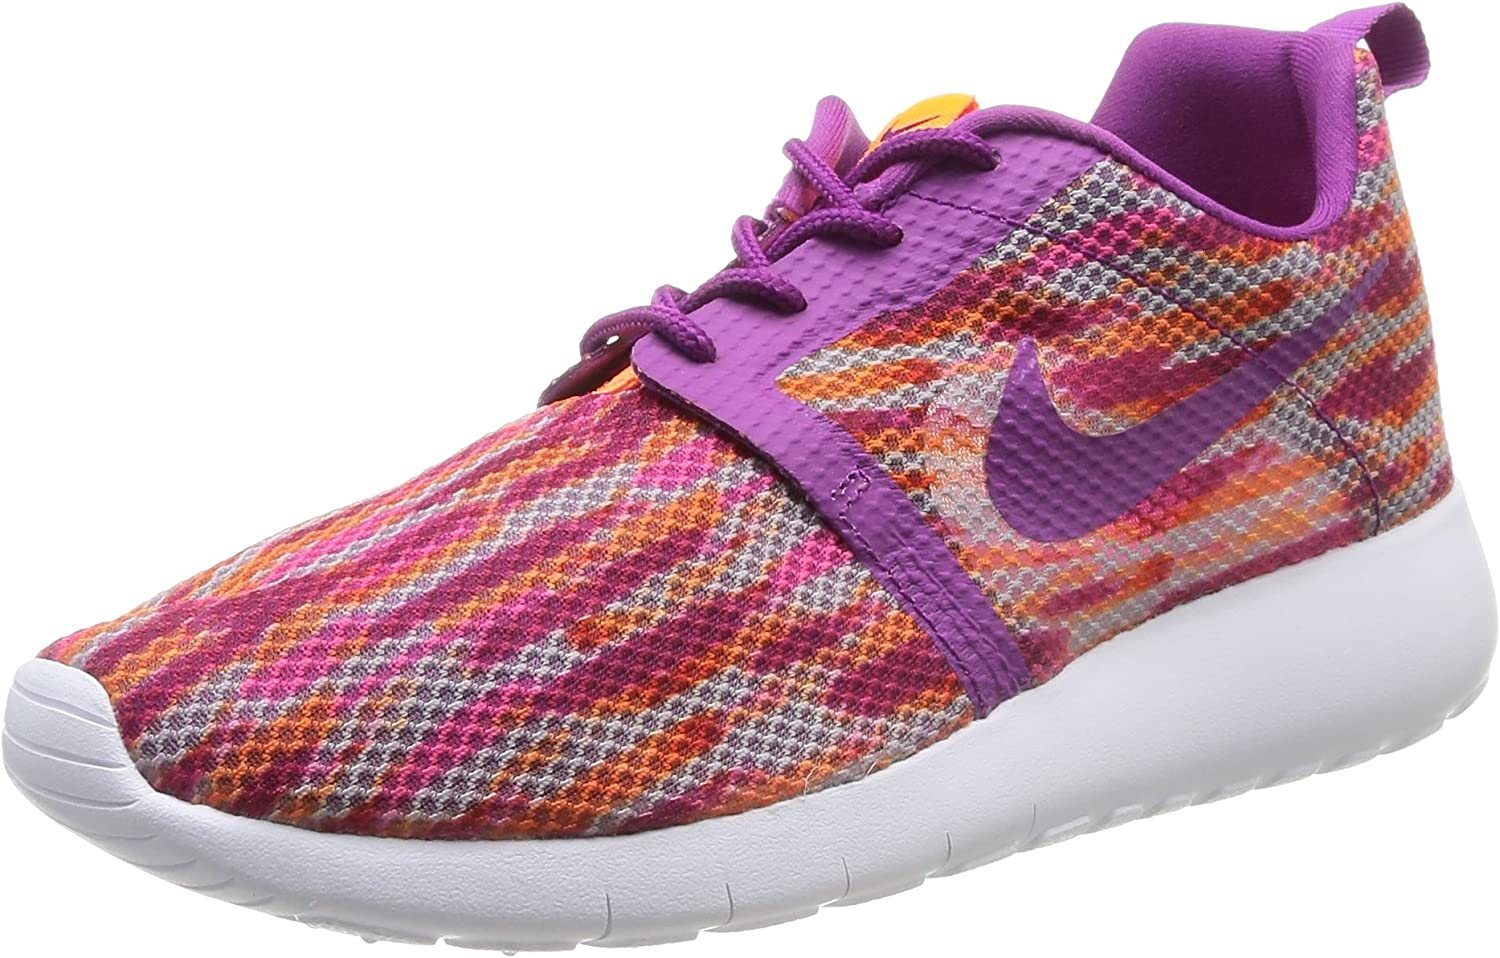 Nike Roshe one Flight Weight (GS) Trainers 705486 Sneakers Shoes